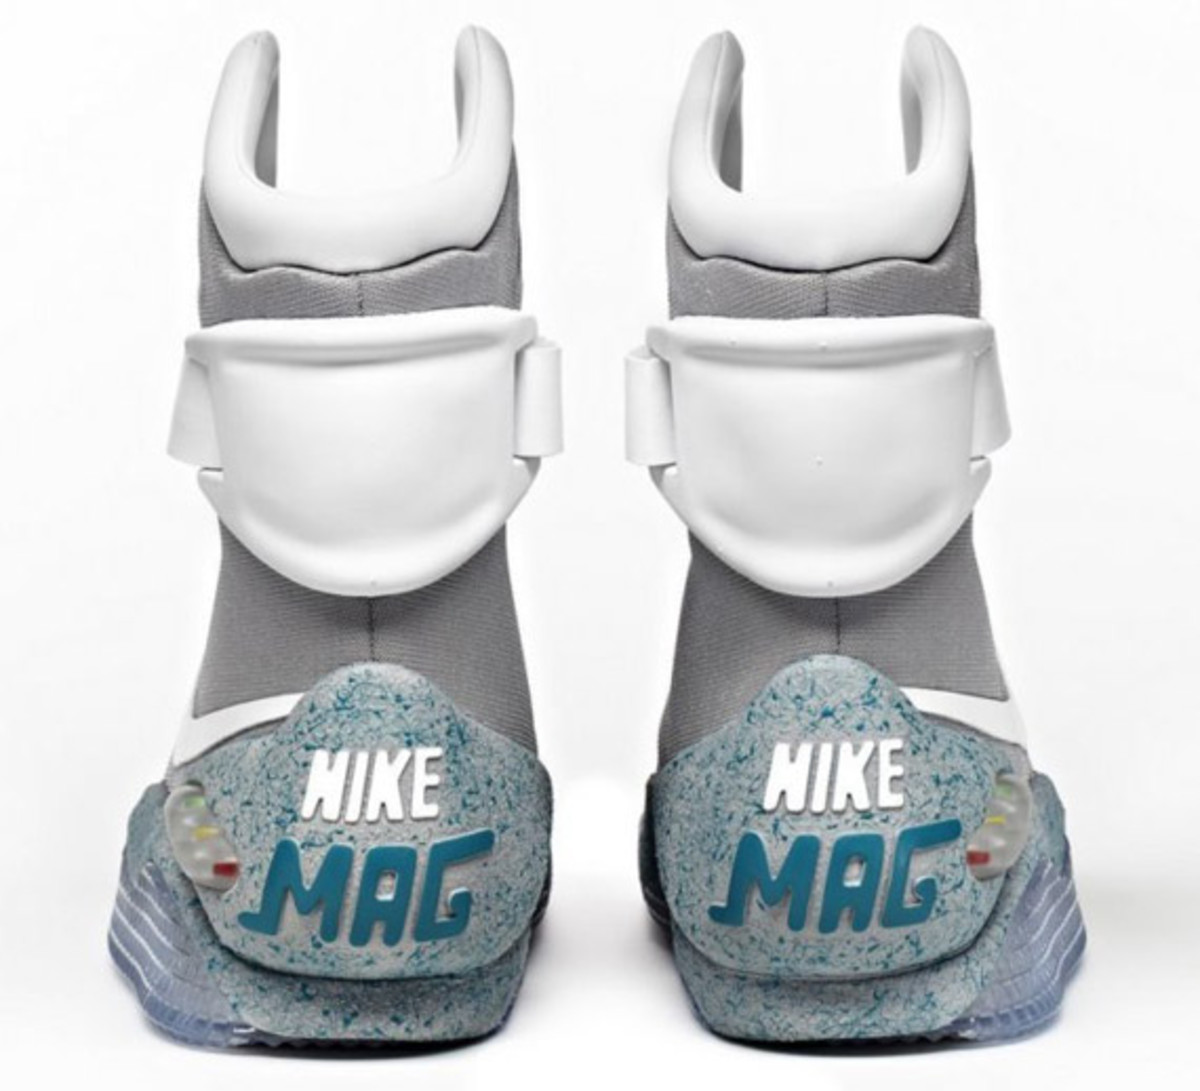 2011-nike-mag-charity-auction-reminder-08